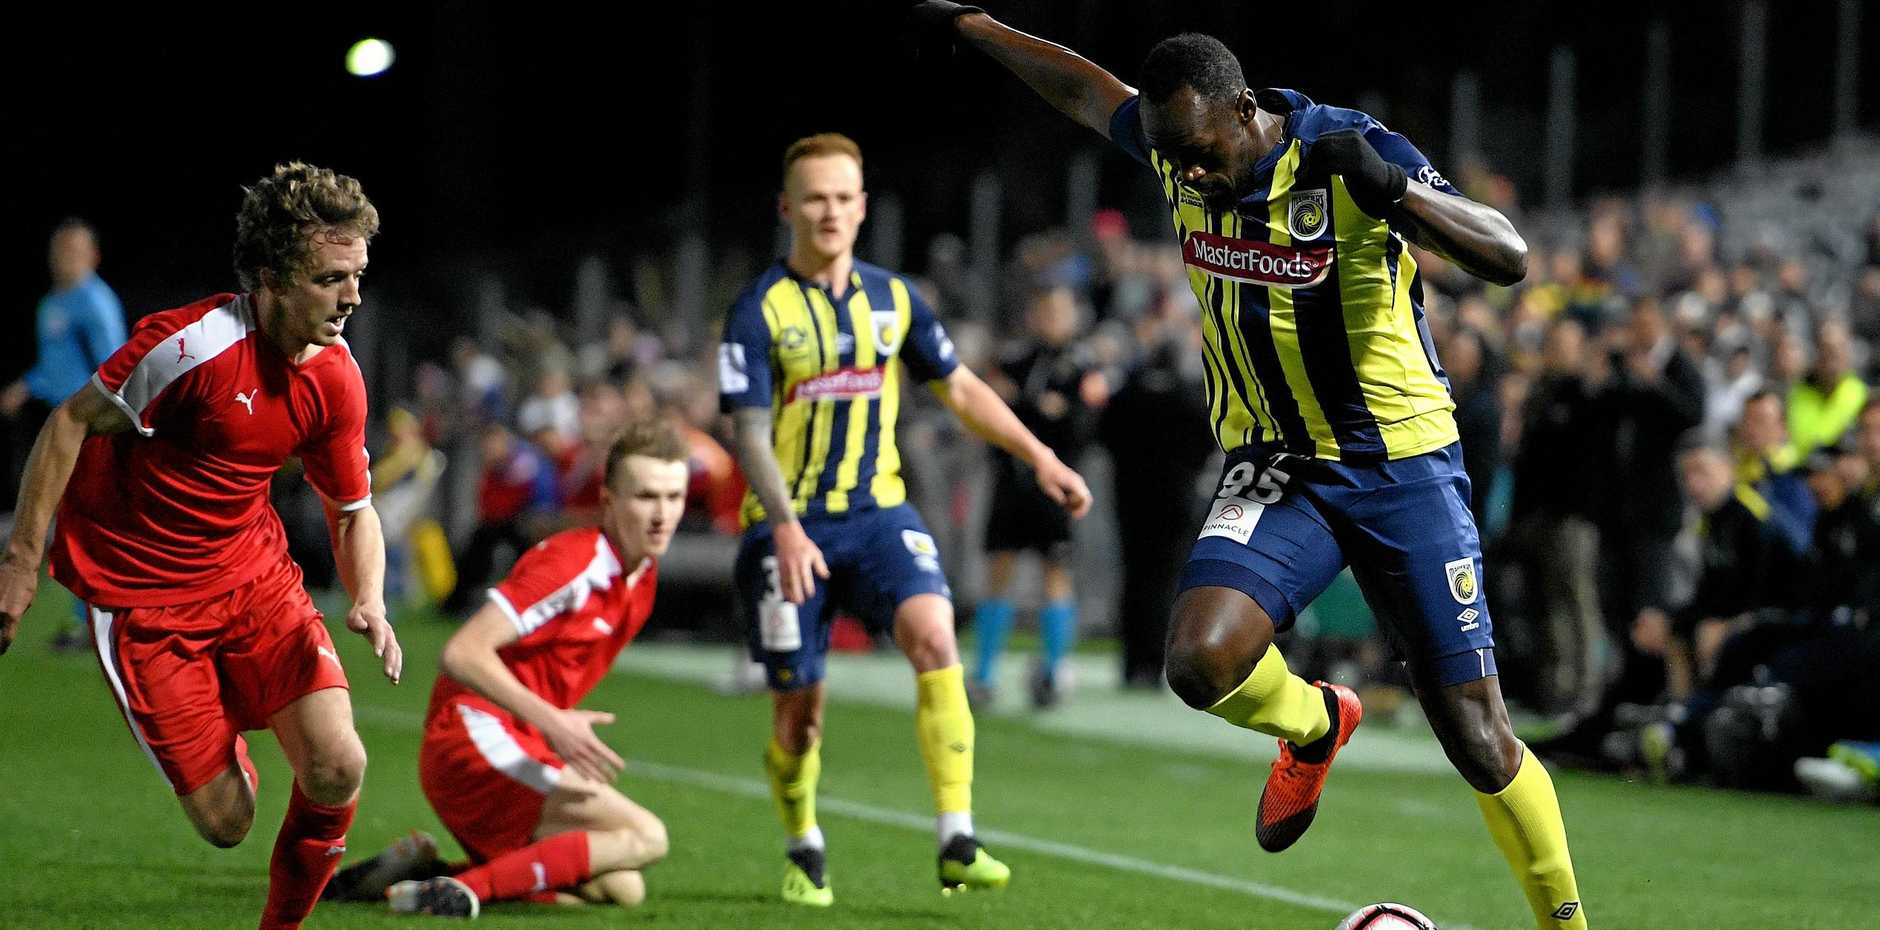 Usain Bolt on the run Mariners in their A-League trial match against the Central Coast Select XI at Central Coast Stadium in Gosford on August 31.  Picture: Dan Himbrechts/AAP